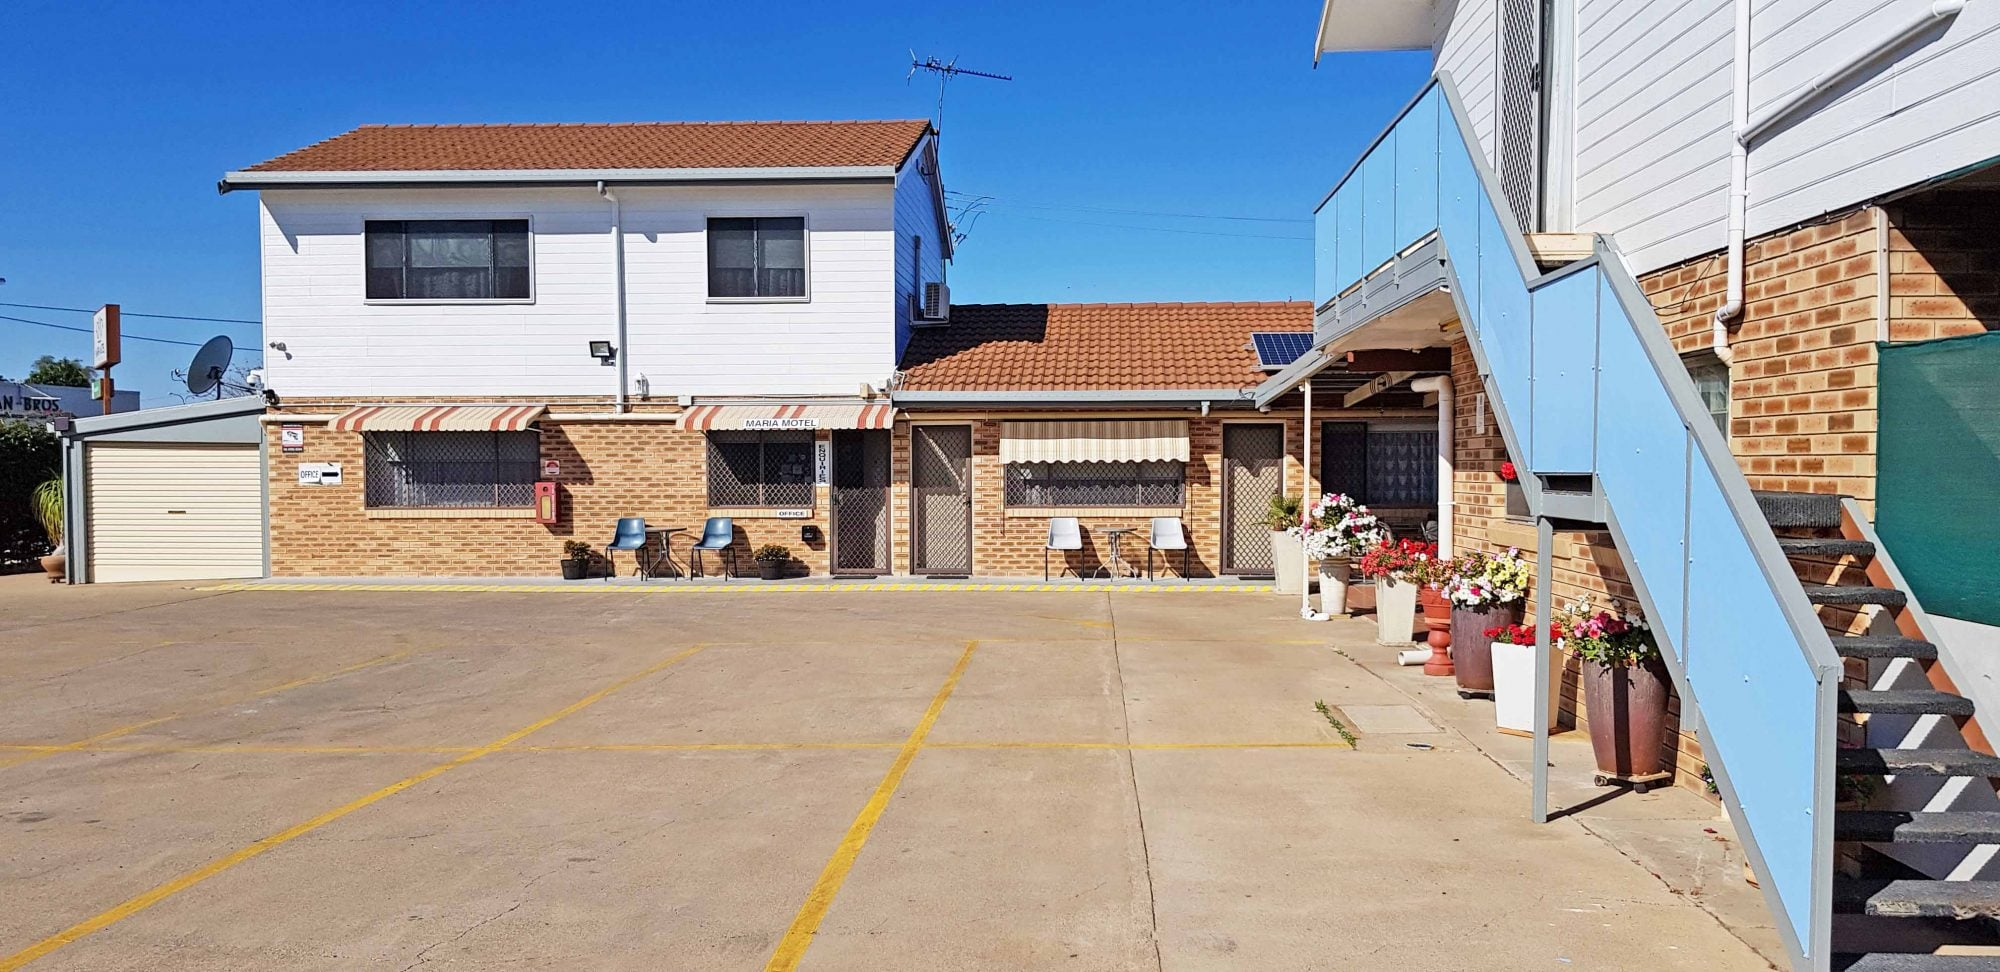 maria motel courtyard and parking space for the guest